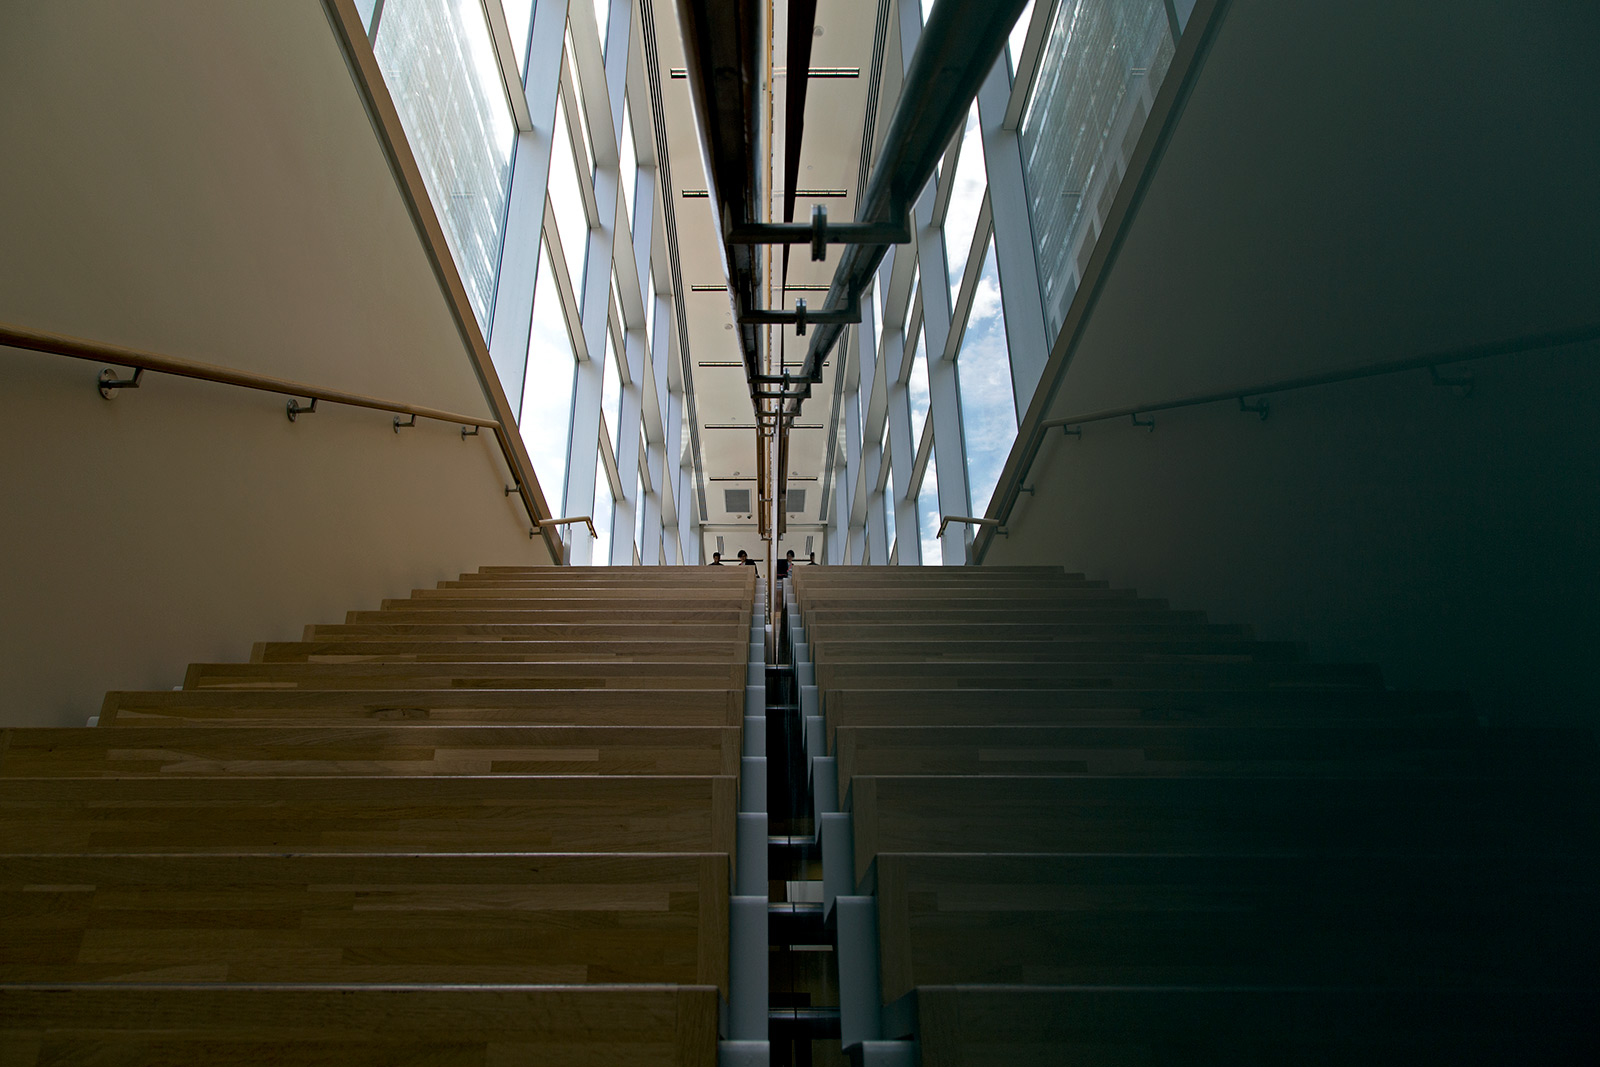 20140530. The reflection of the other stairs at the Li Ka Shing Knowledge Institute (Toronto).